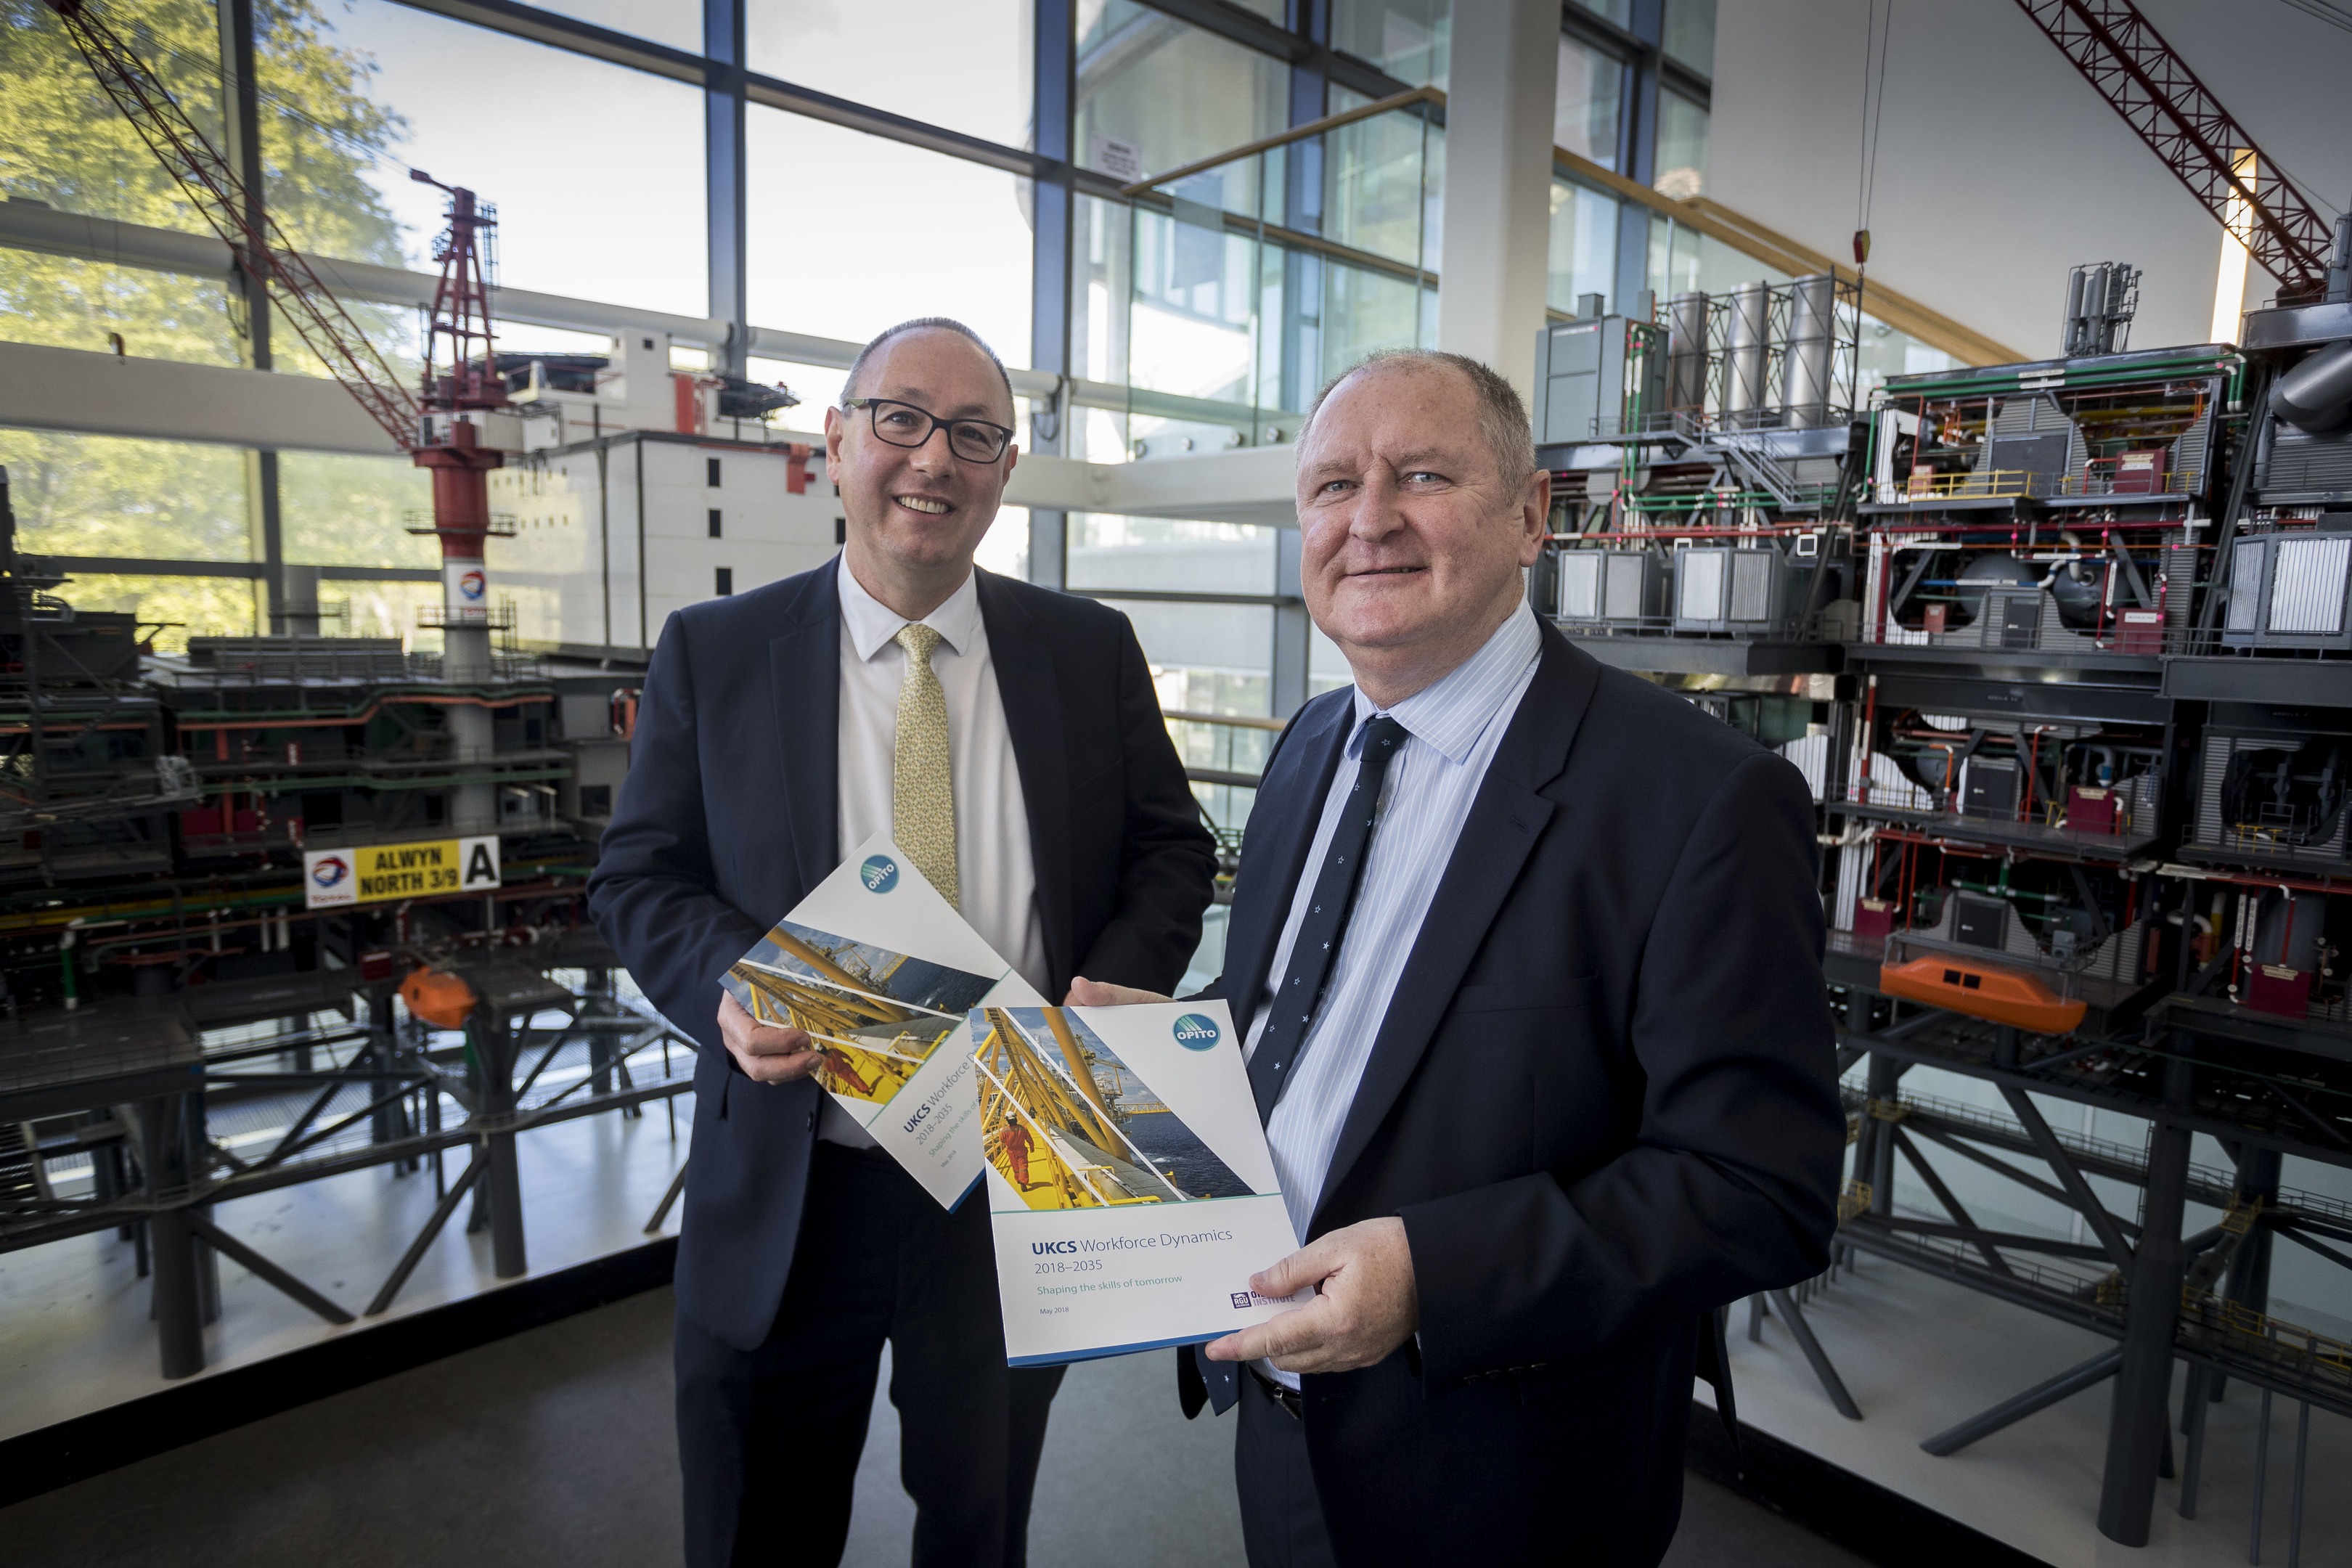 Professor Paul de Leeuw and John McDonald at the launch of the review earlier this month.